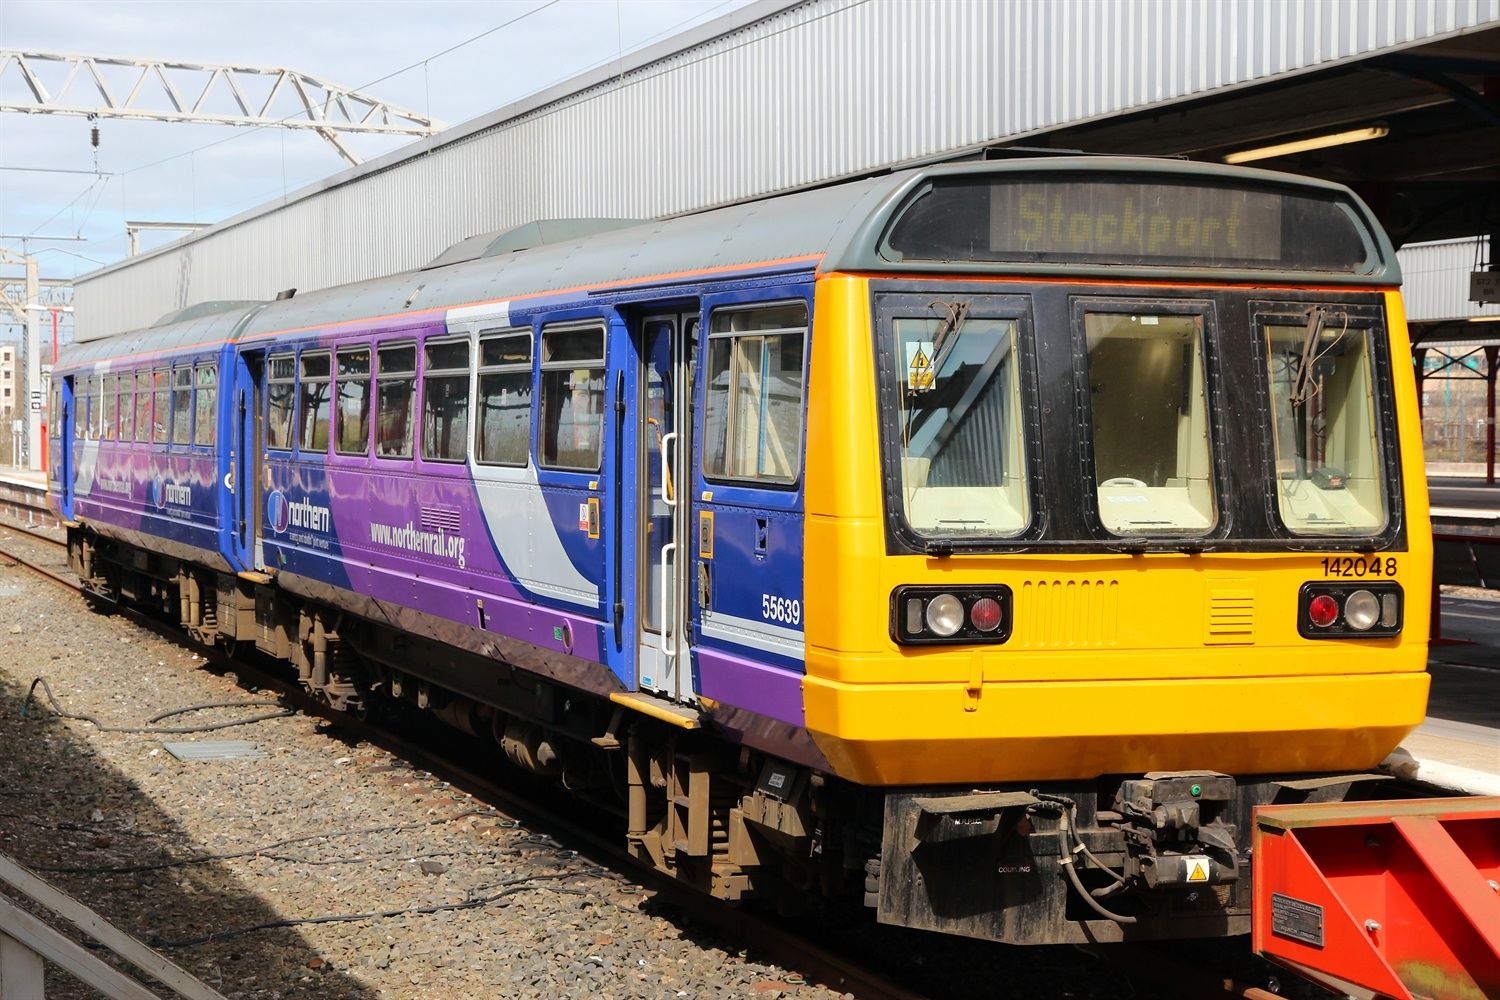 40-year-old Pacer trains in East Lancashire gone by end of the year, assures Northern